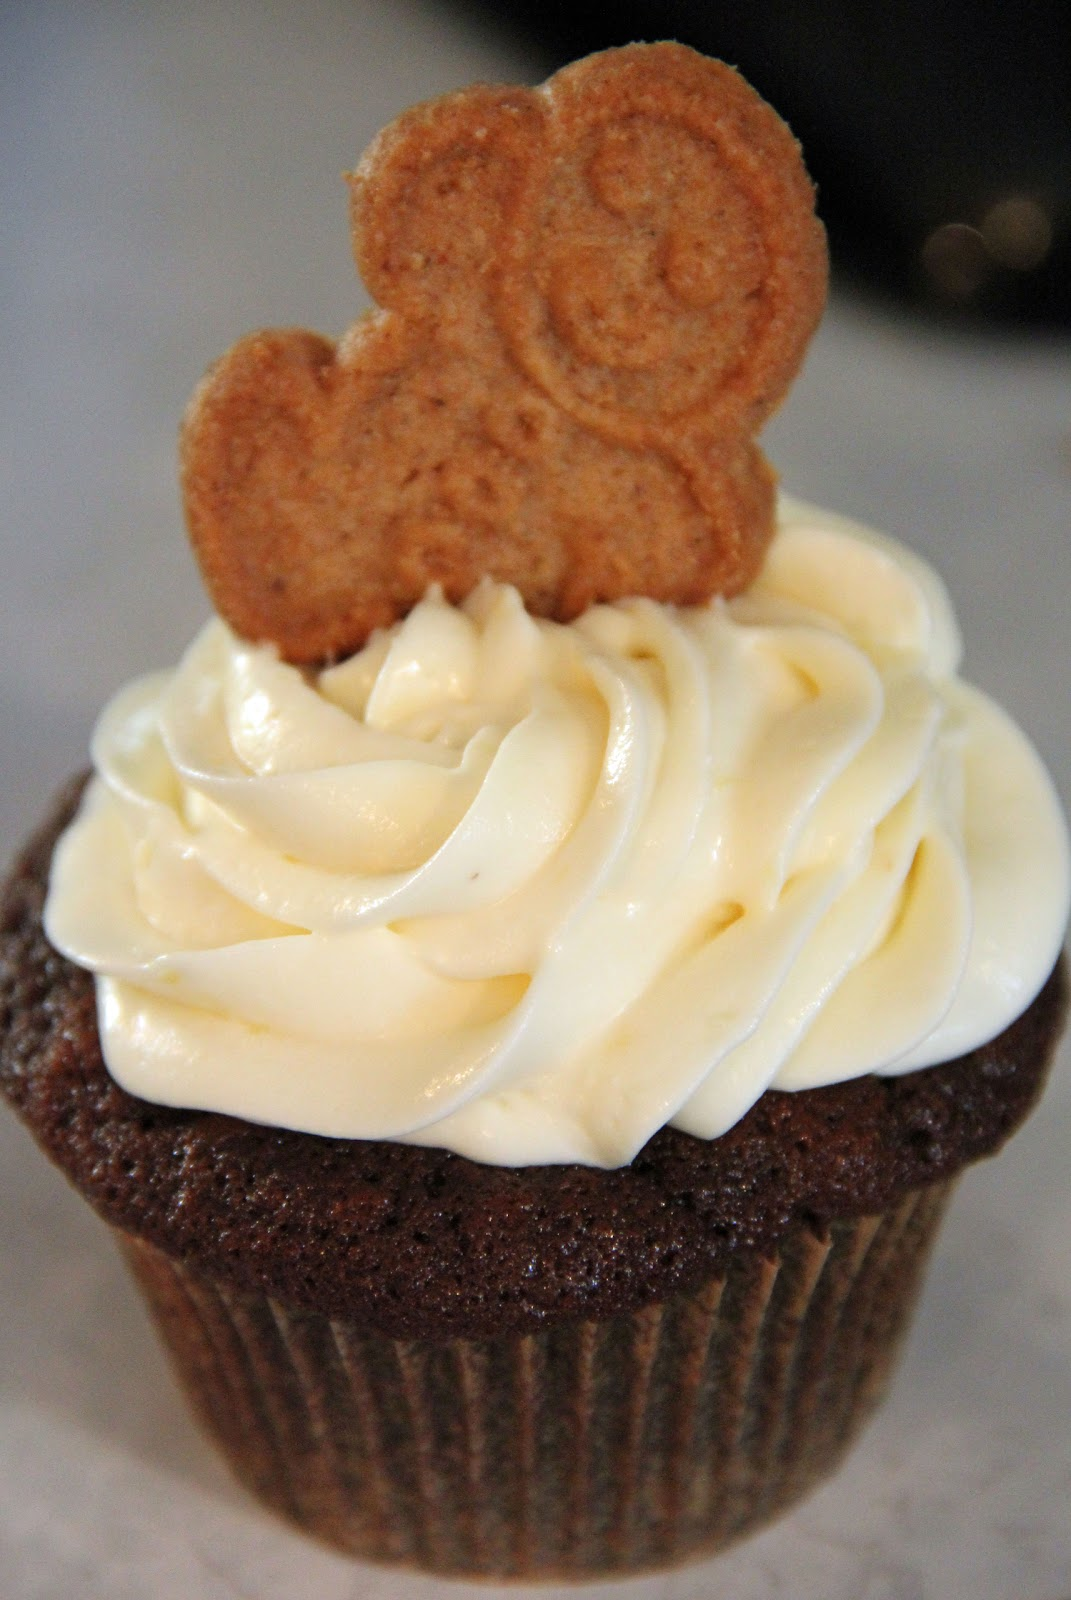 ... and Sue: Gingerbread Latte Cupcakes with Lemon Cream Cheese Frosting